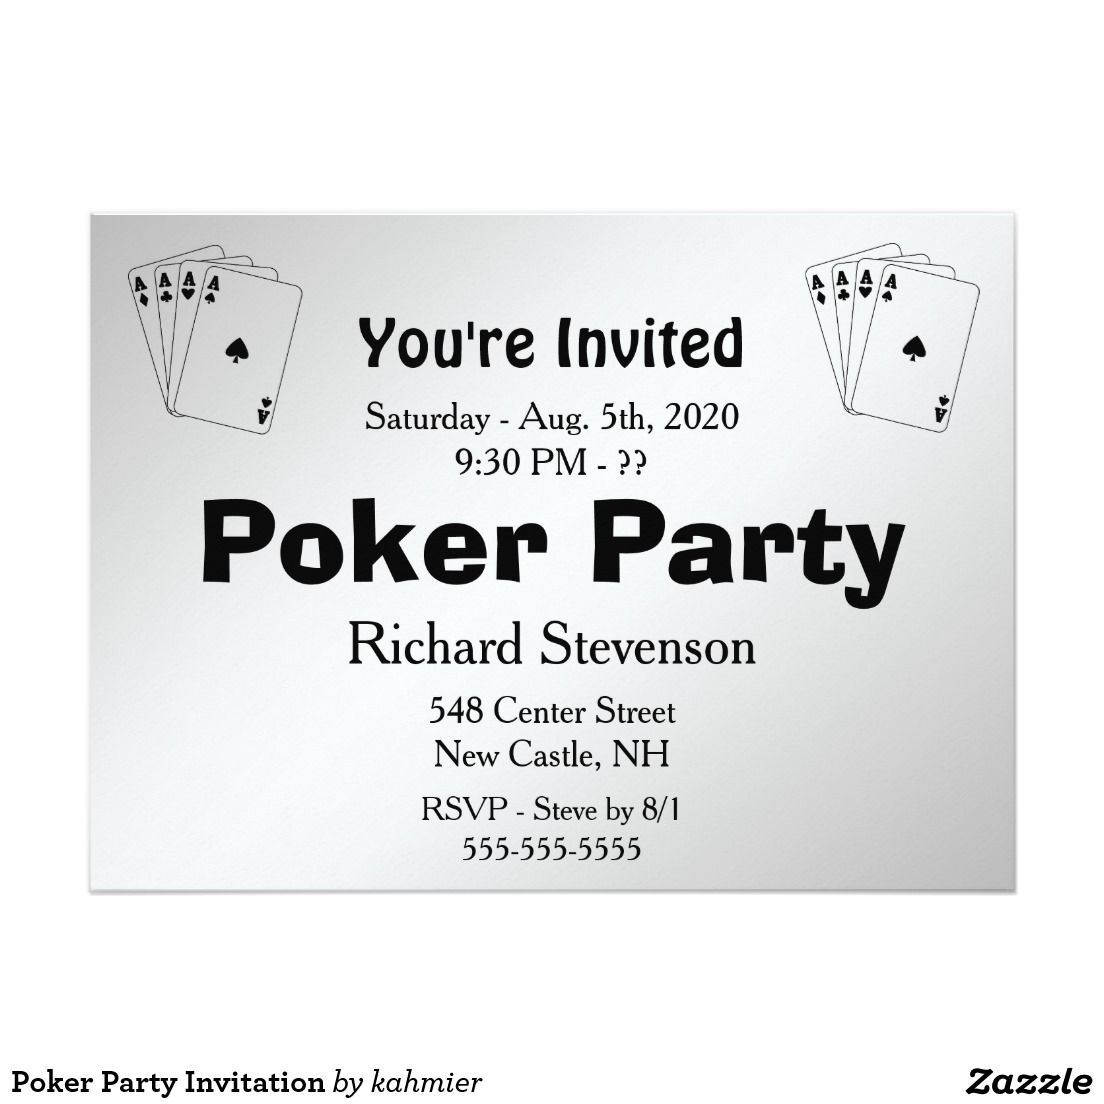 Poker Party Invitation | Stuff SOLD on Zazzle | Pinterest | Poker ...